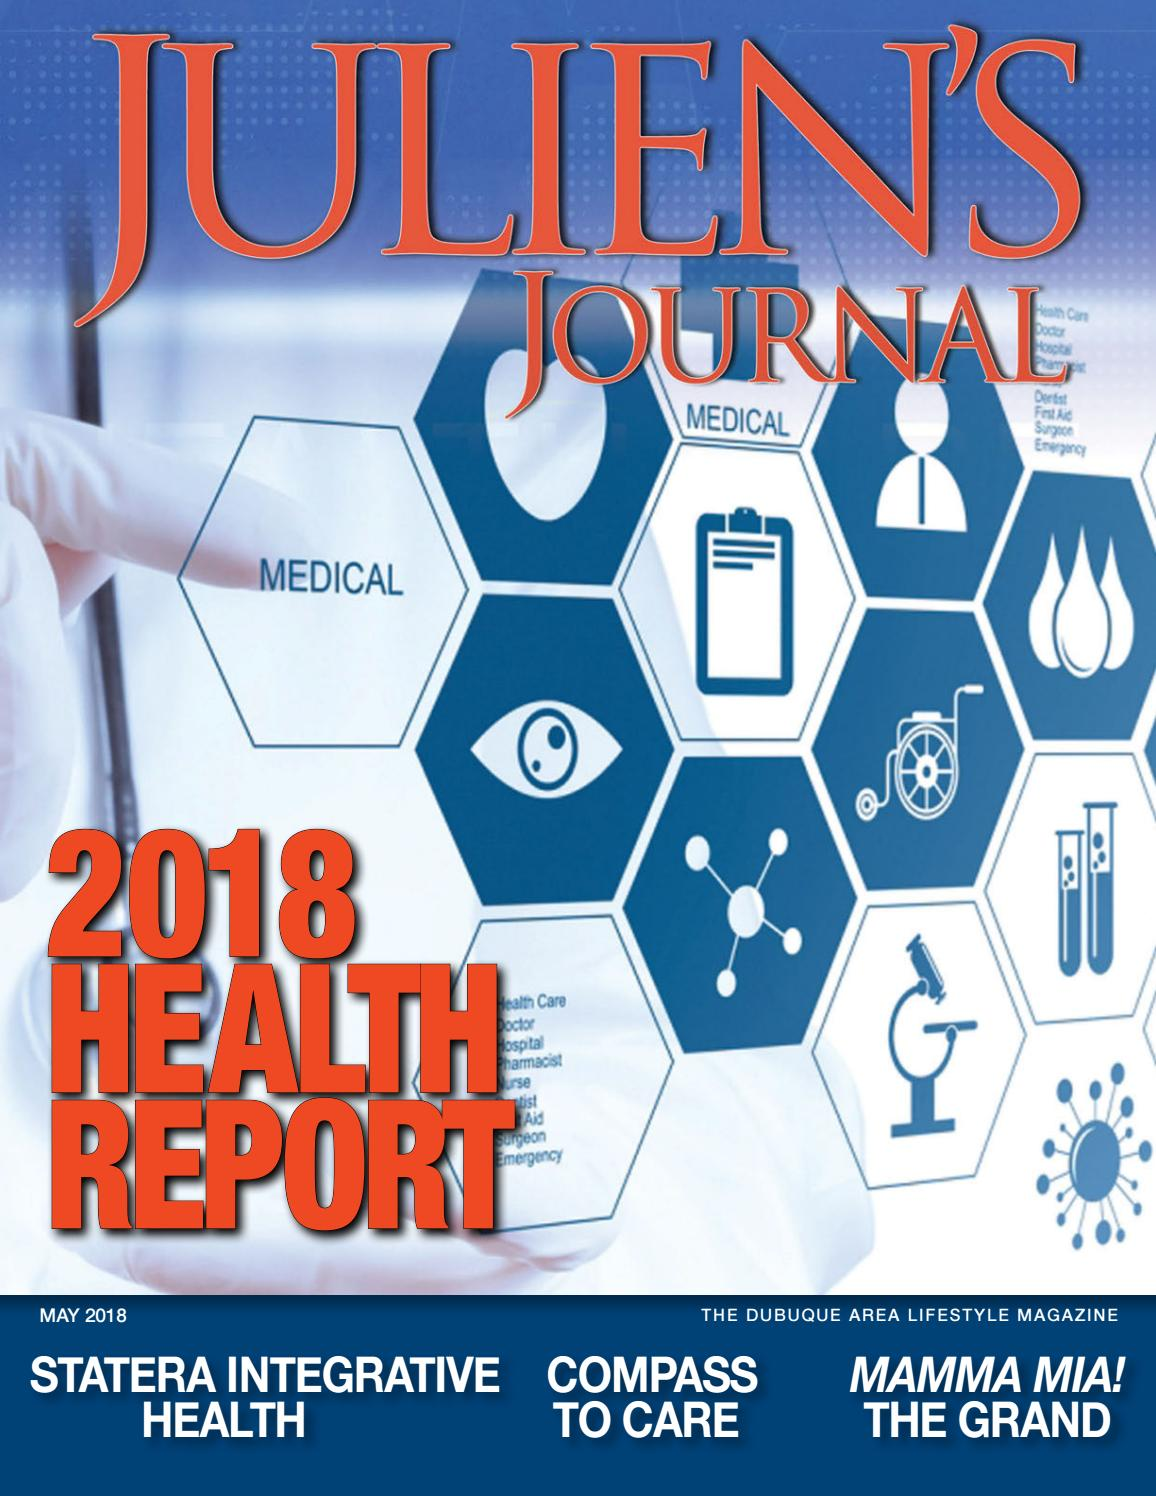 May 2018 (Volume 43, Number 5) by Julien's Journal issuu